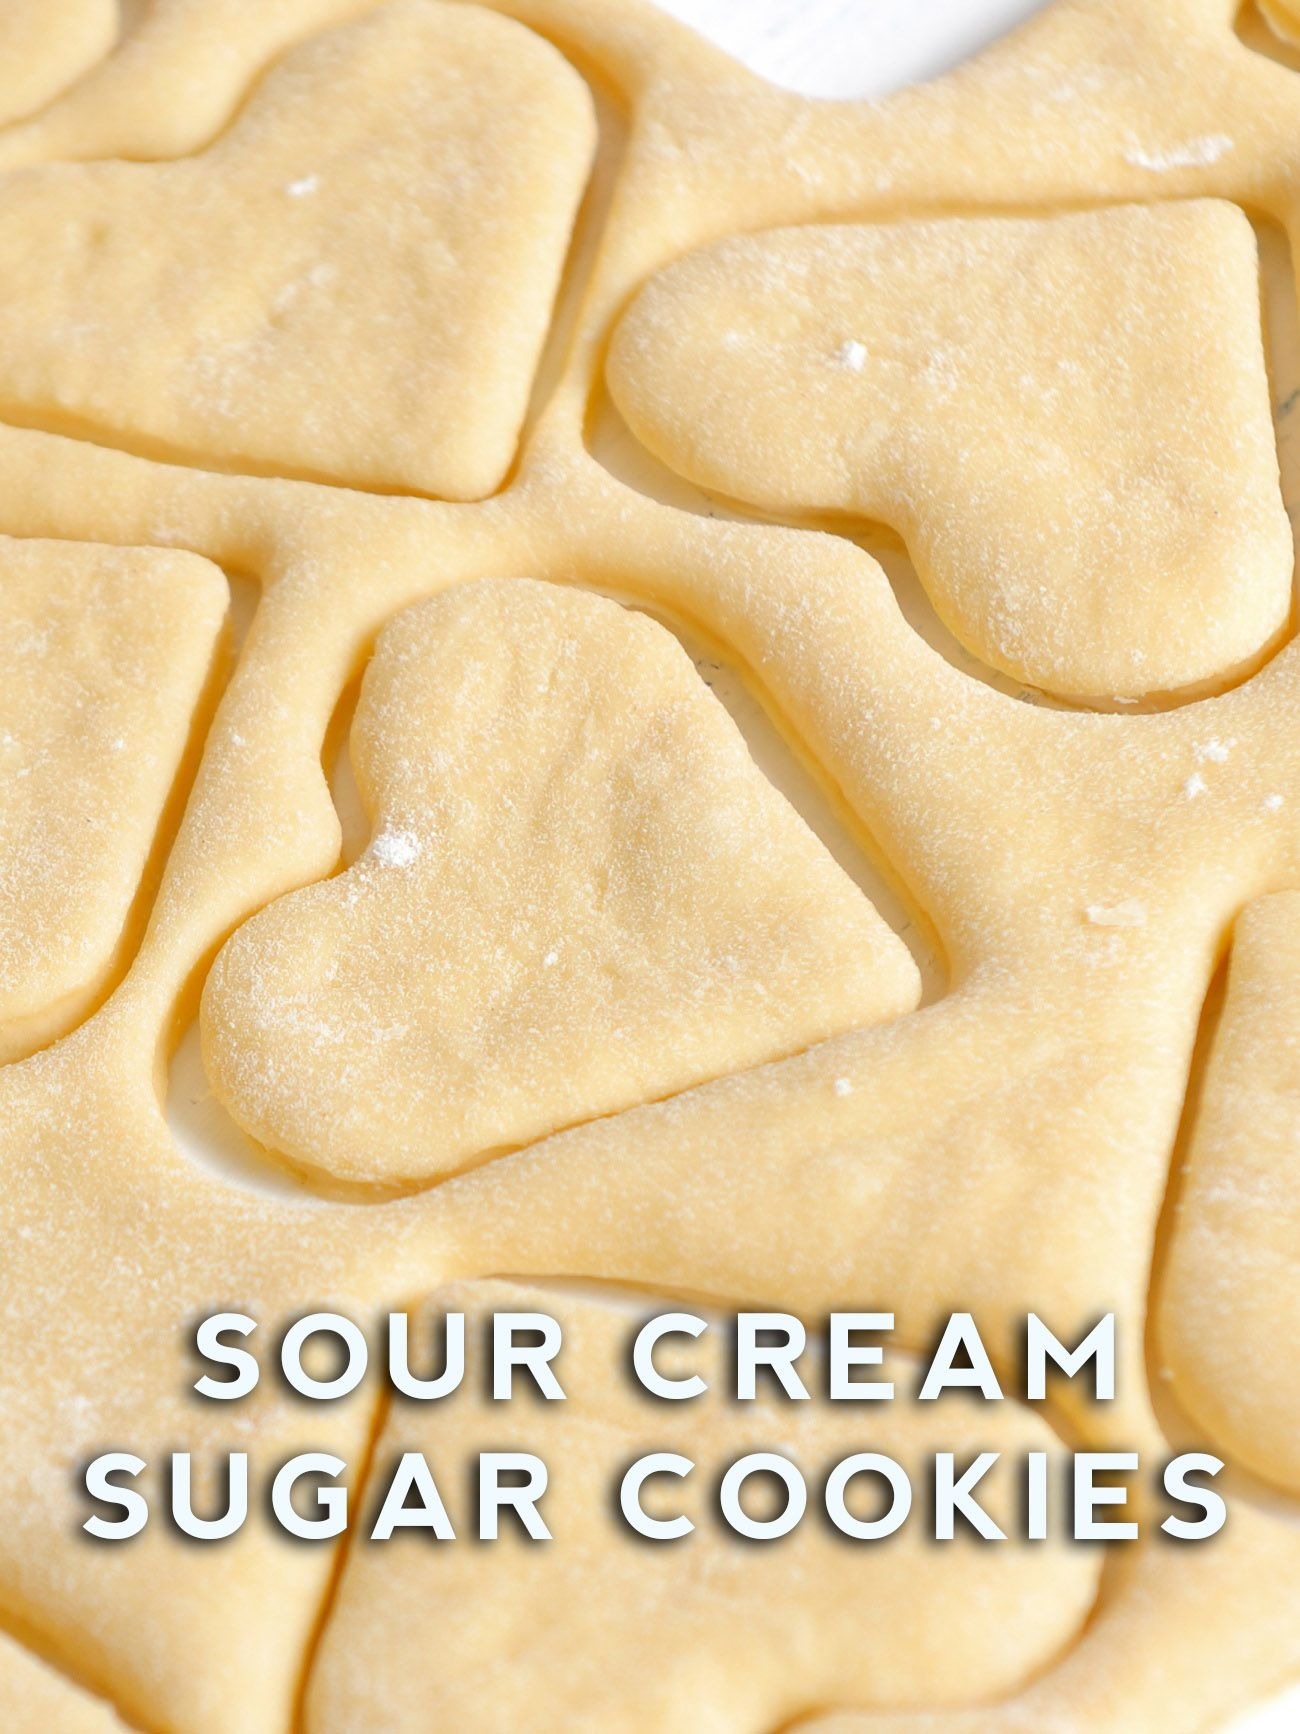 Sour Cream Sugar Cookies Recipe Sour Cream Sugar Cookies Best Christmas Cookie Recipe Cookies Recipes Christmas